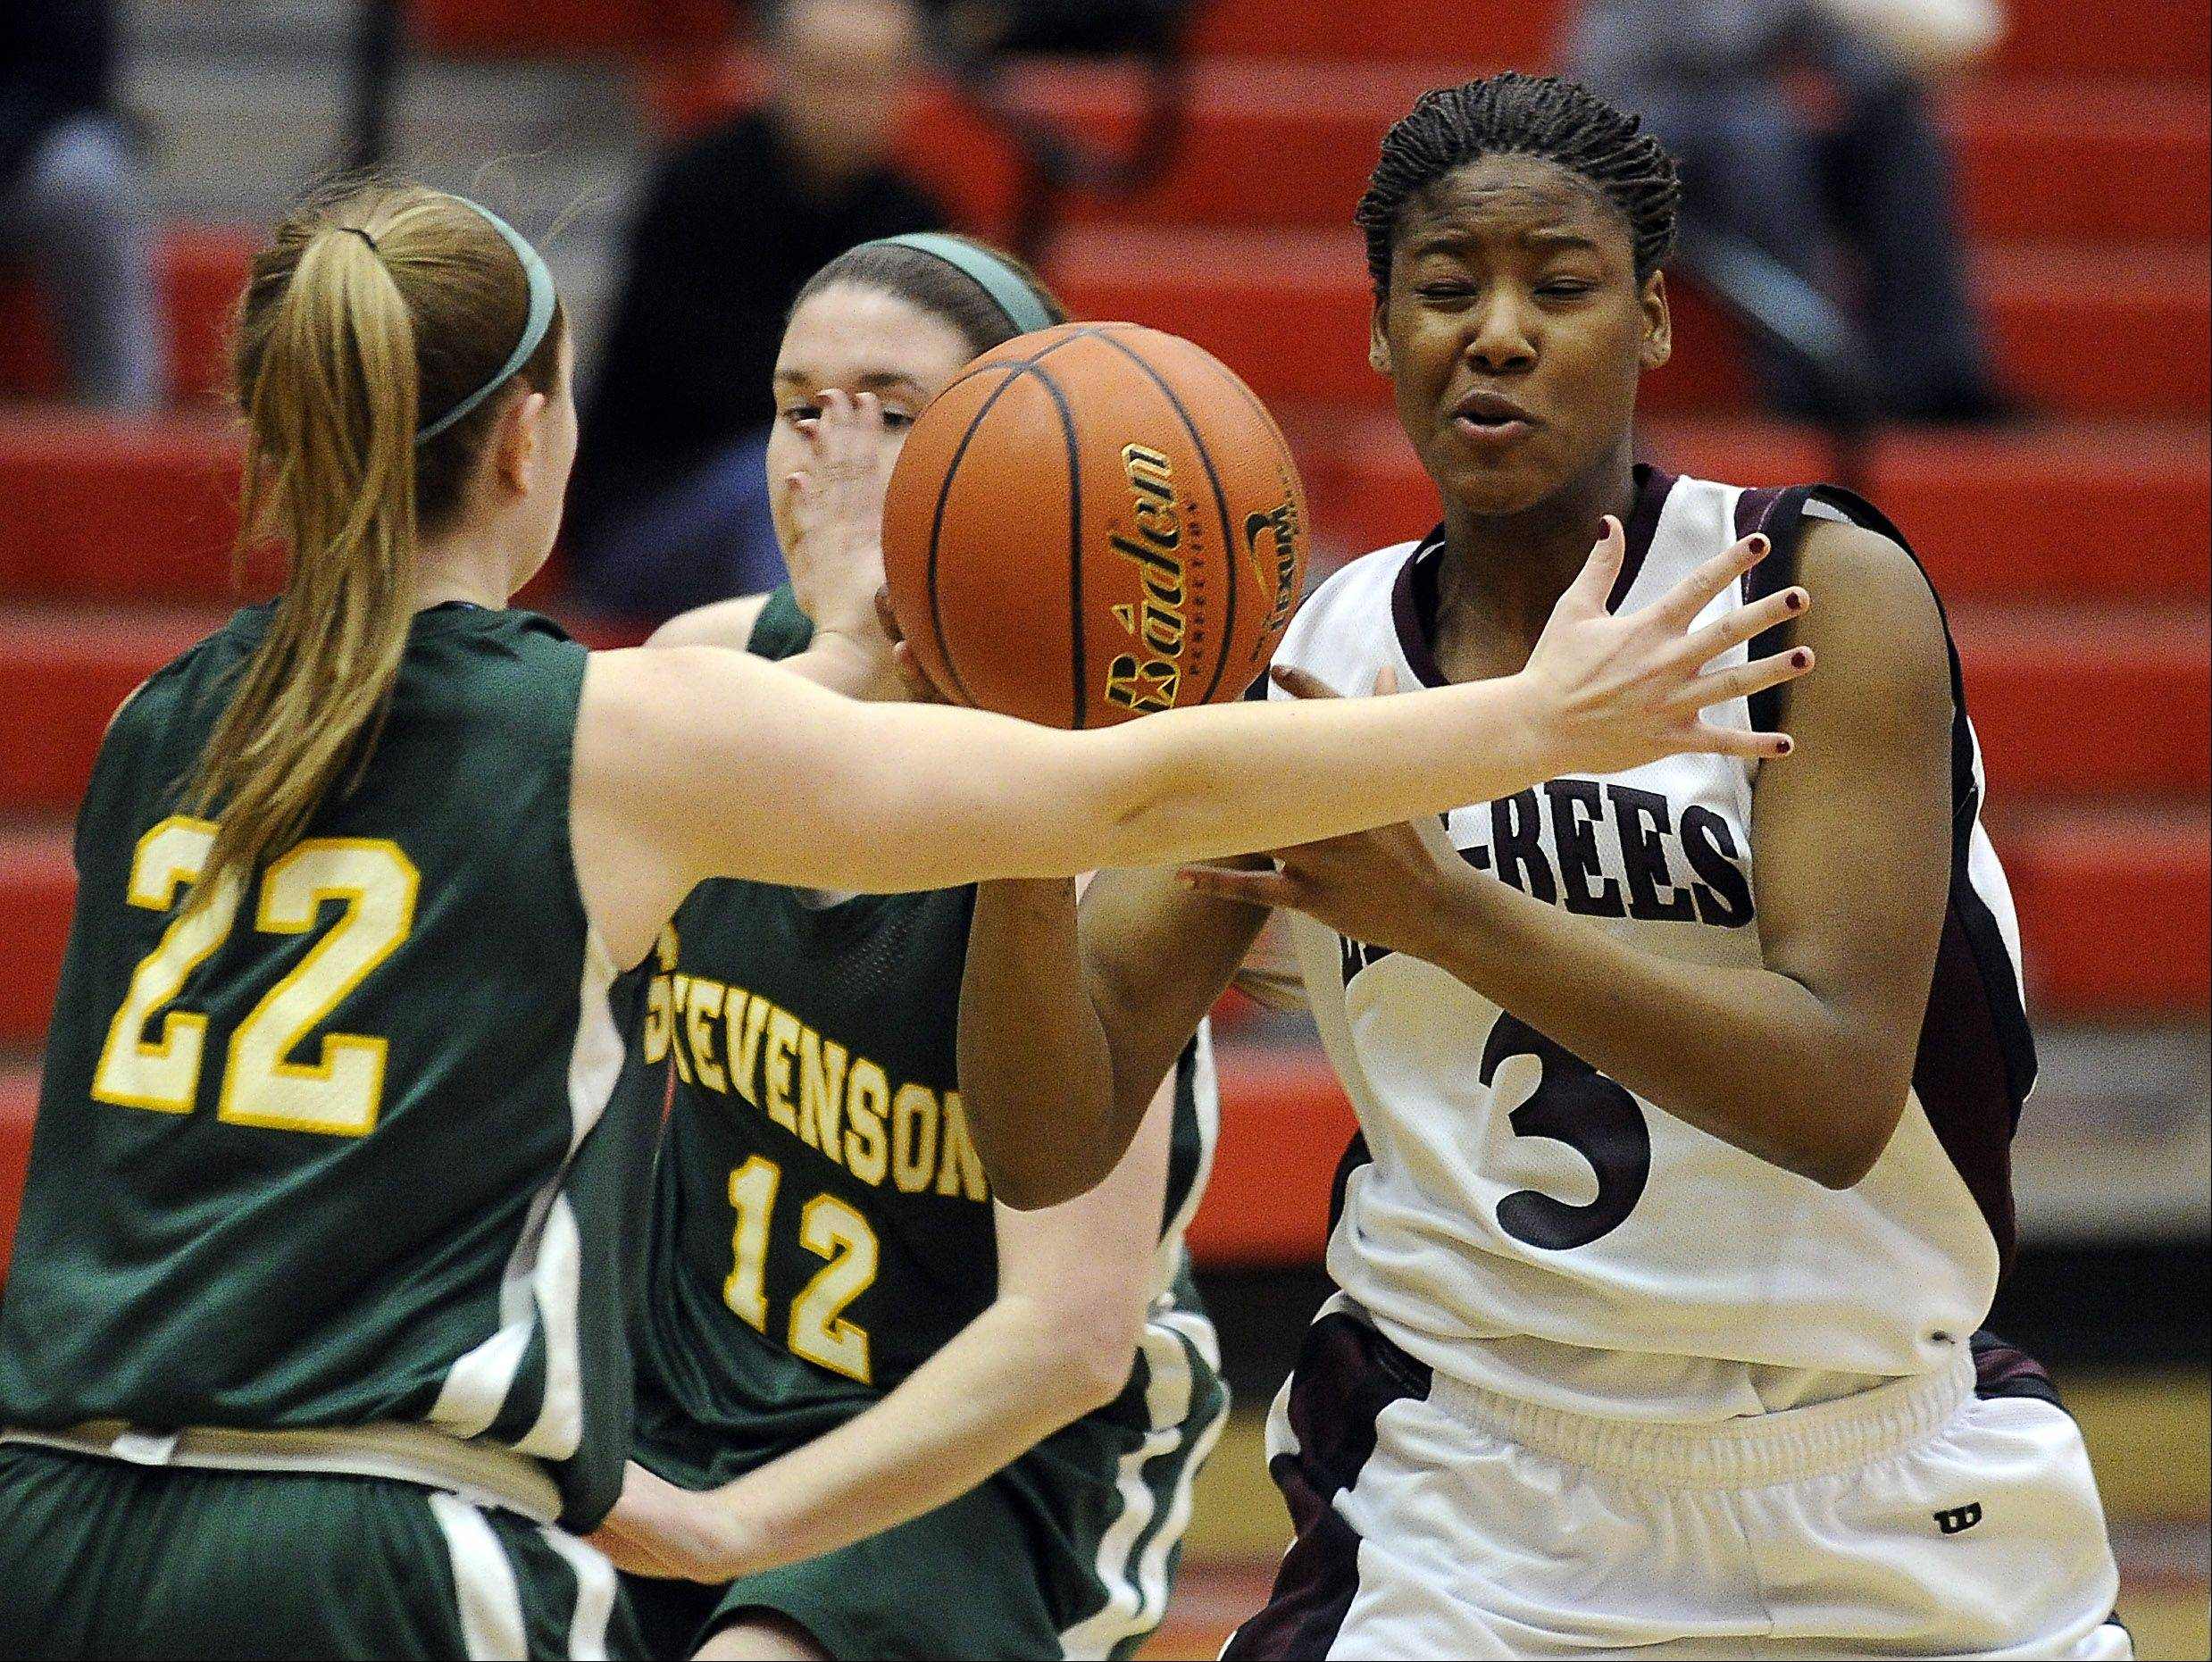 Images: Stevenson vs. Zion-Benton girls basketball